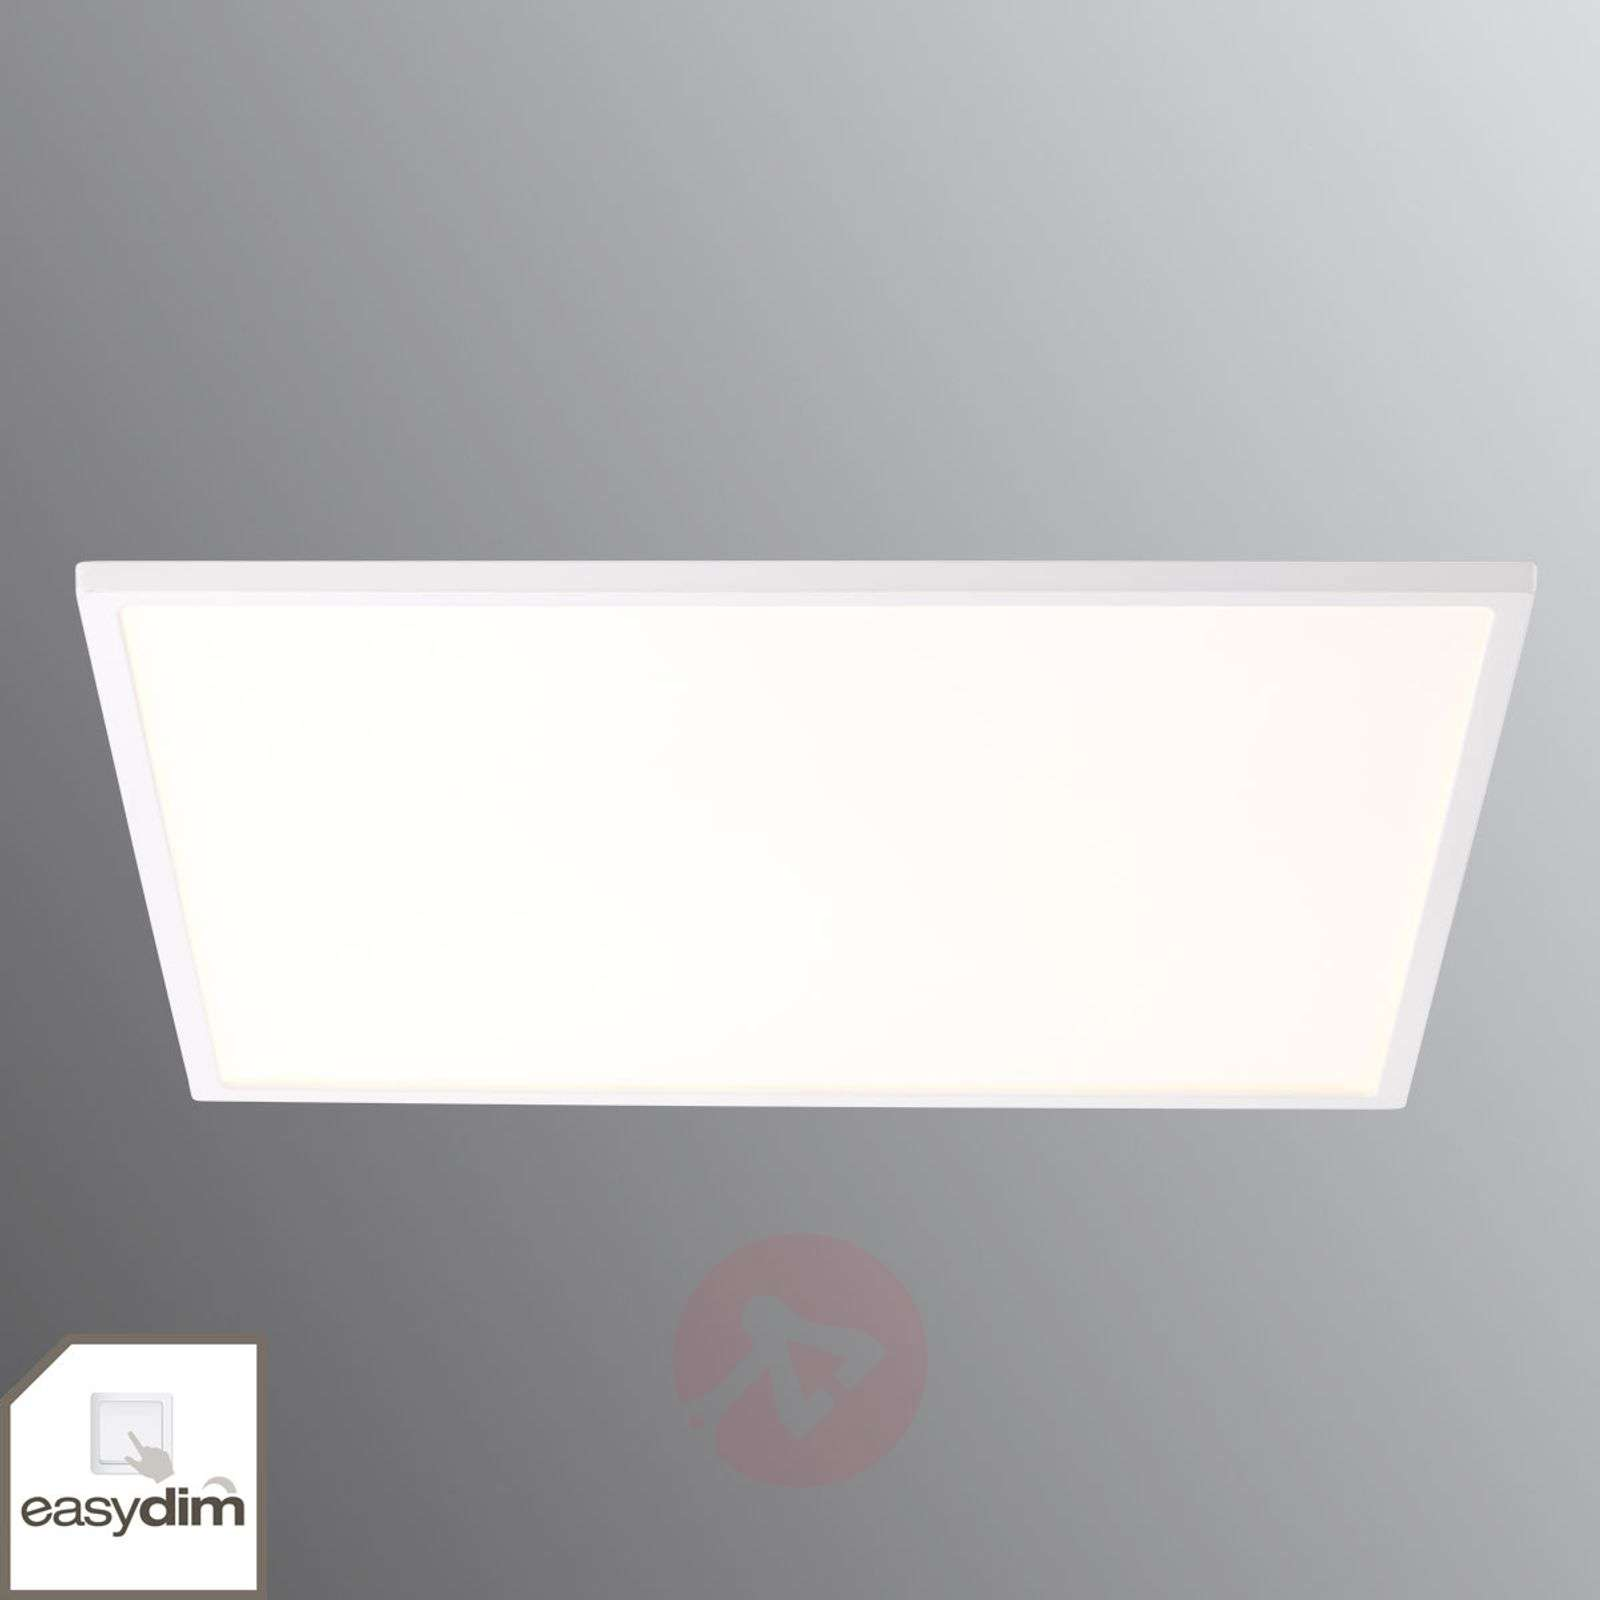 Plafoniere A Led Per Esterno Prezzi : Acquista plafoniera led ceres dimmerabile con interruttore lampade.it